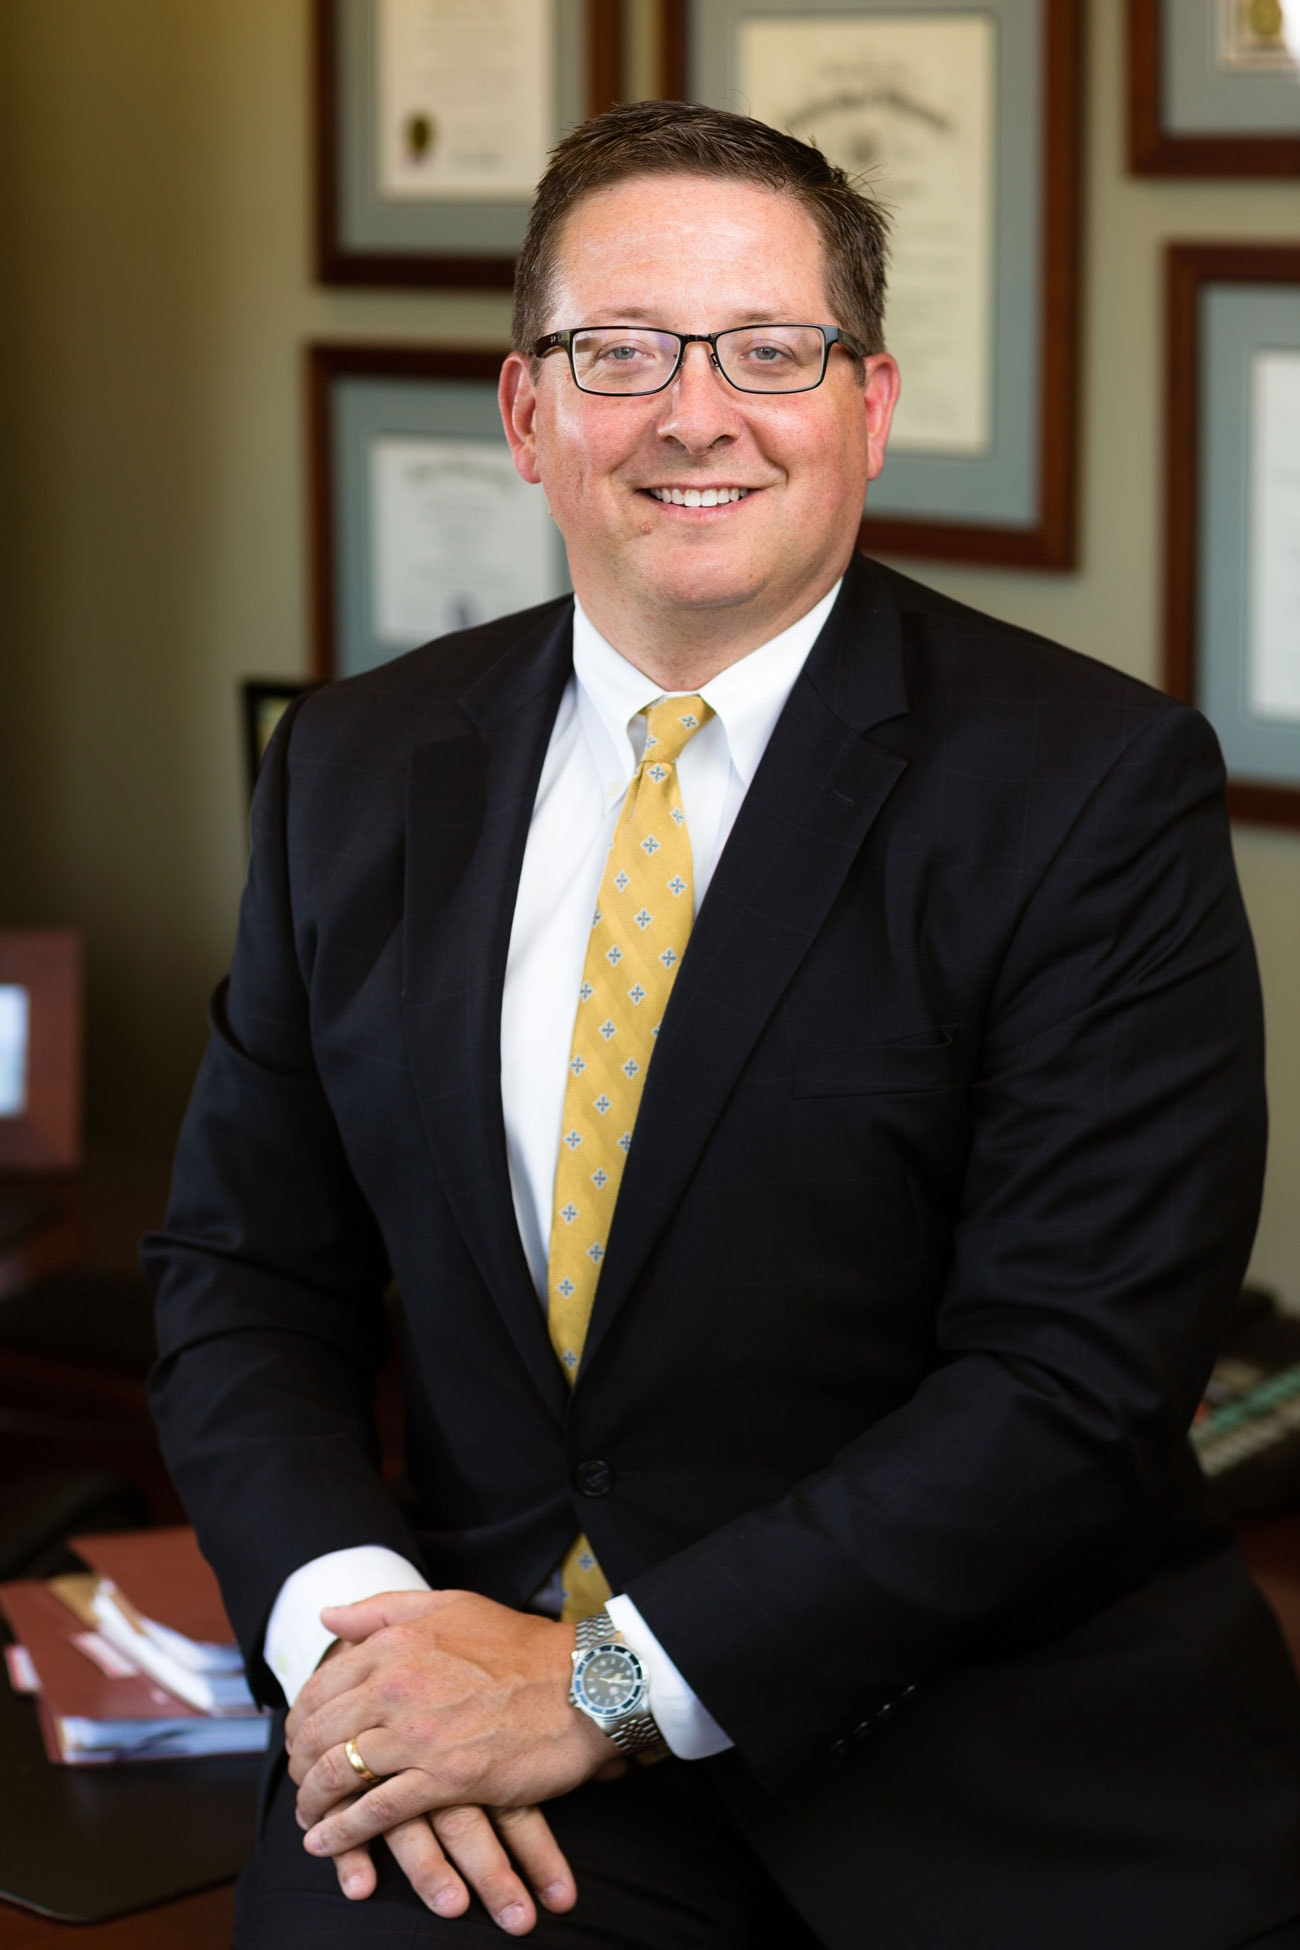 Craig Ortwerth St. Louis personal injury lawyer